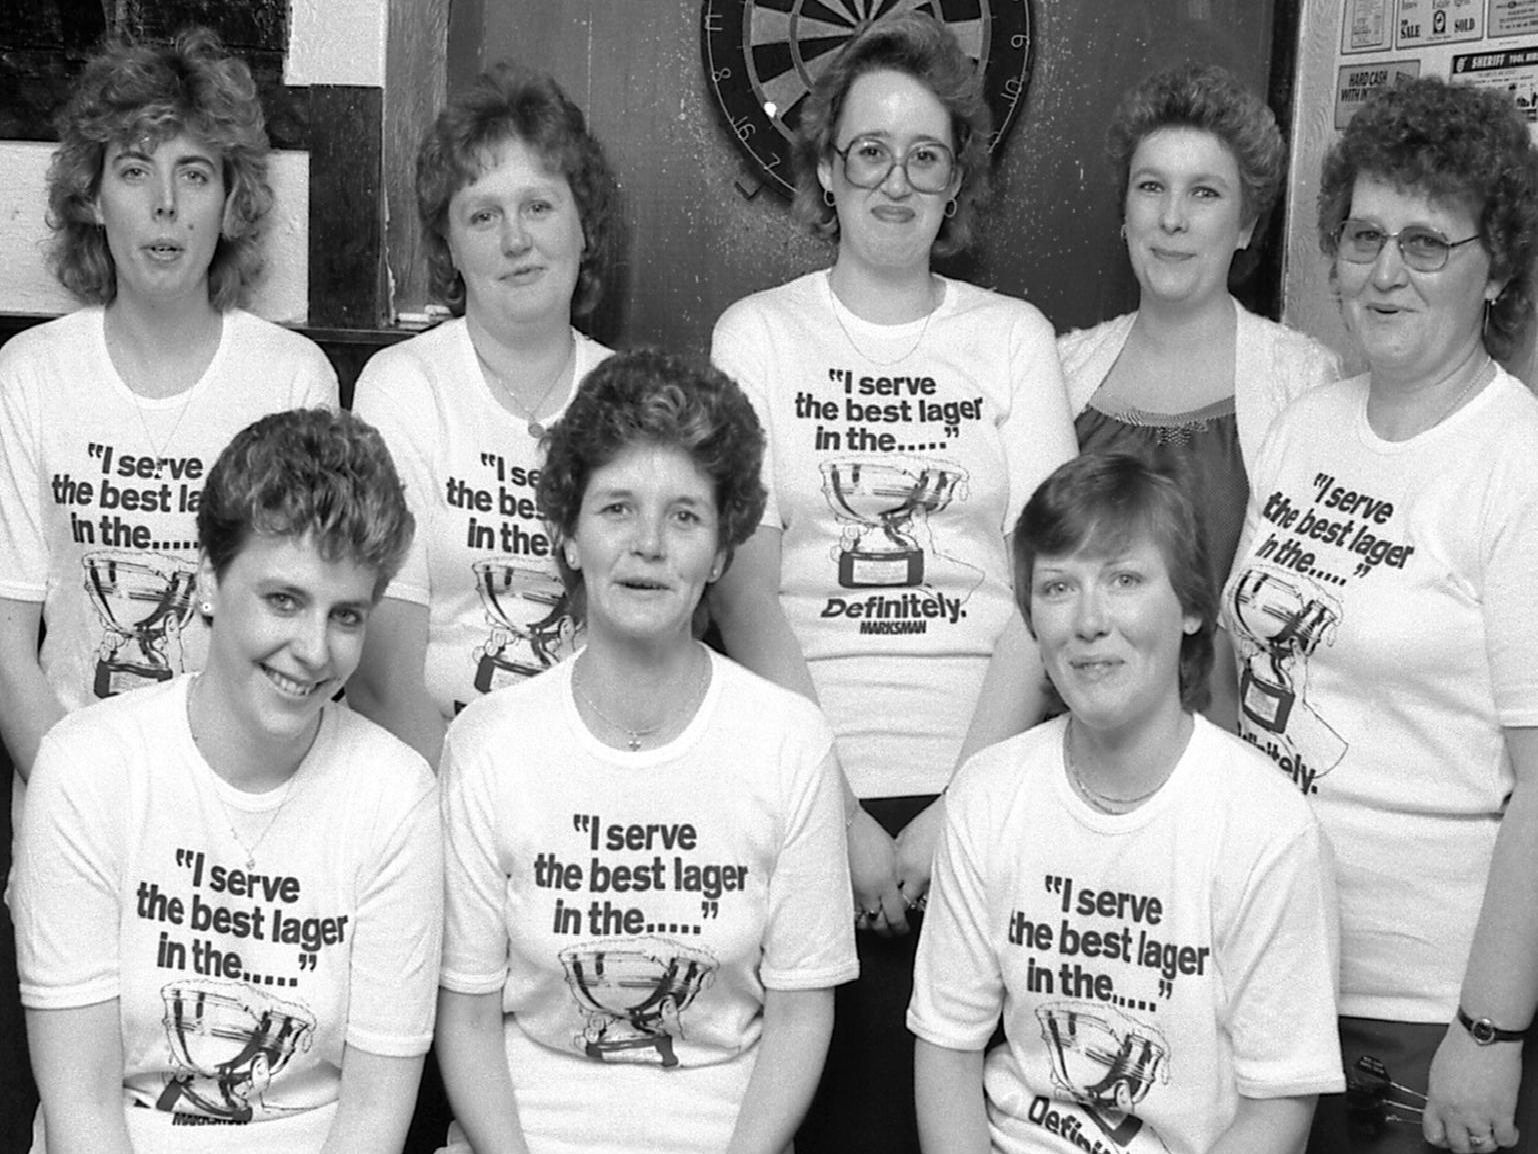 1986: This smiley bunch look ready to win their next match, they play for Bridge Taverns ladies darts team. Did you play for this pub?